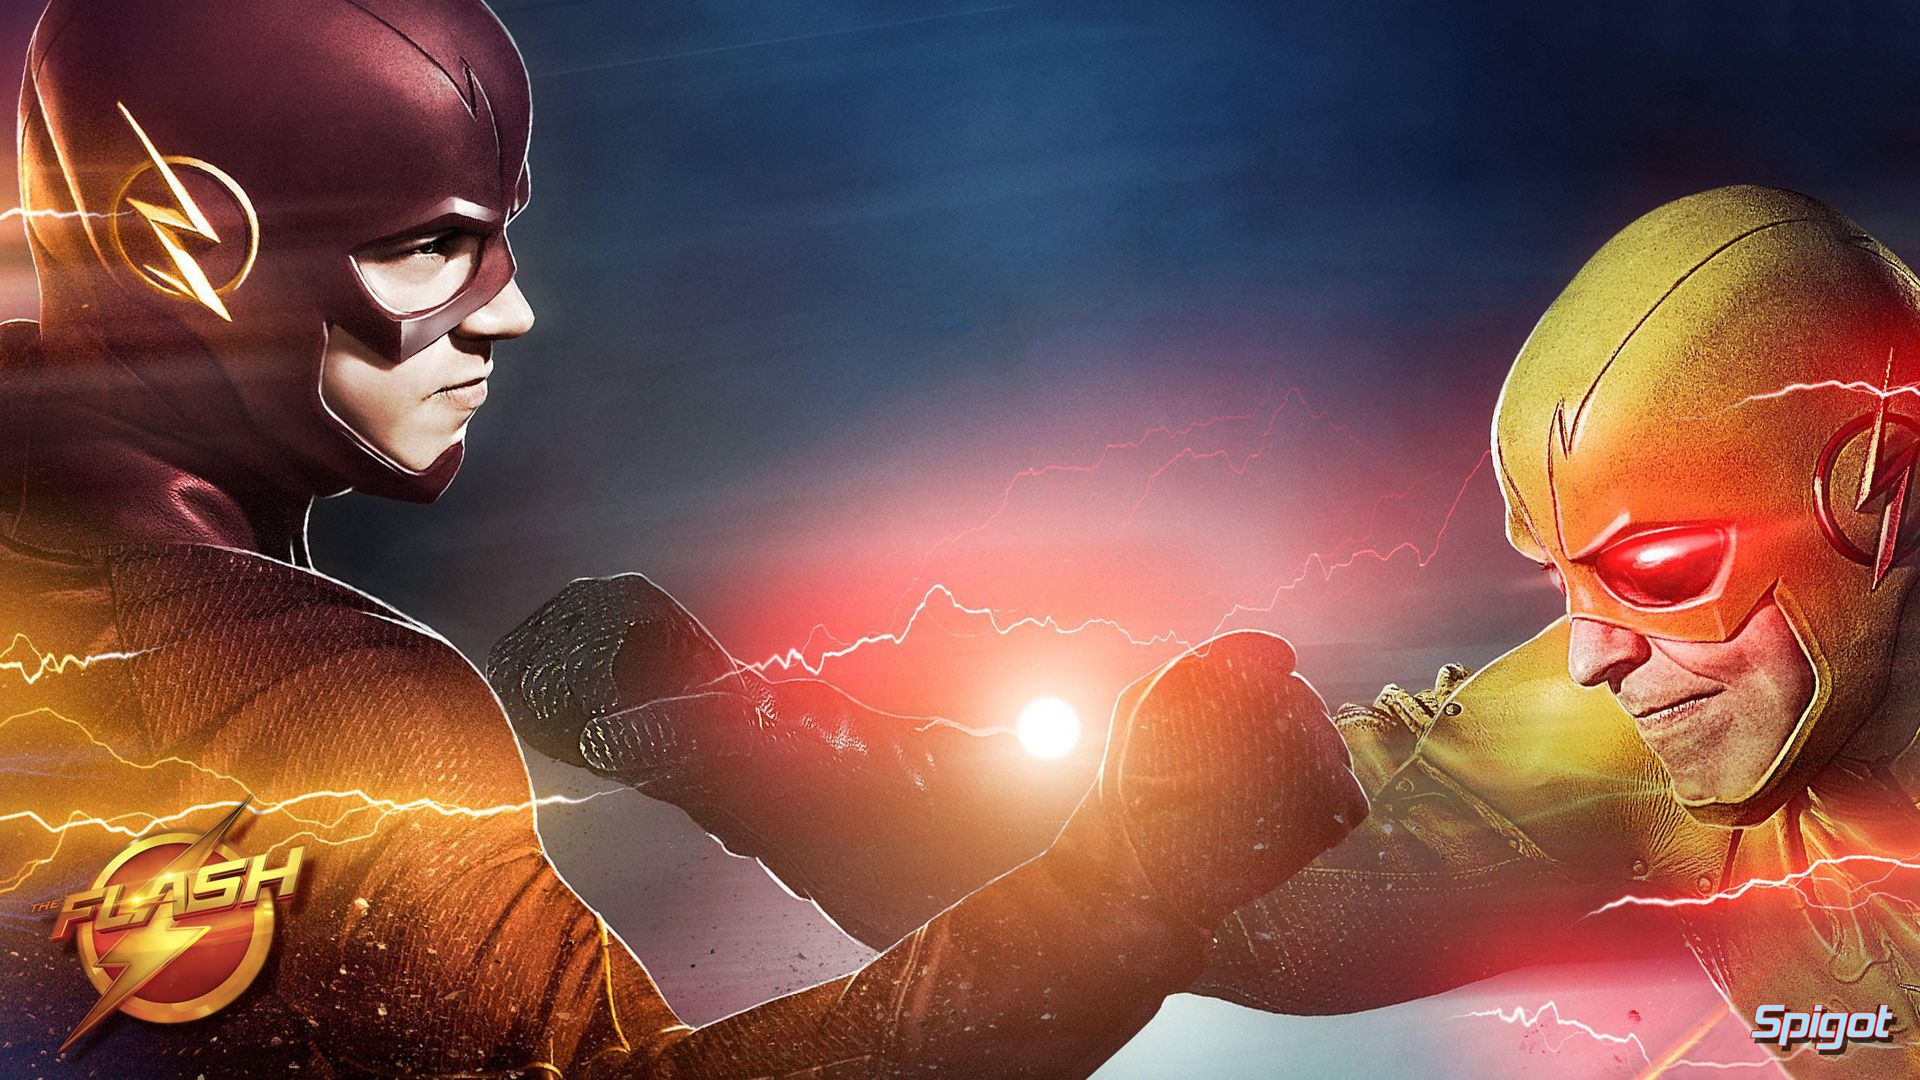 Pin By Zoey On The Flash Flash Wallpaper The Flash